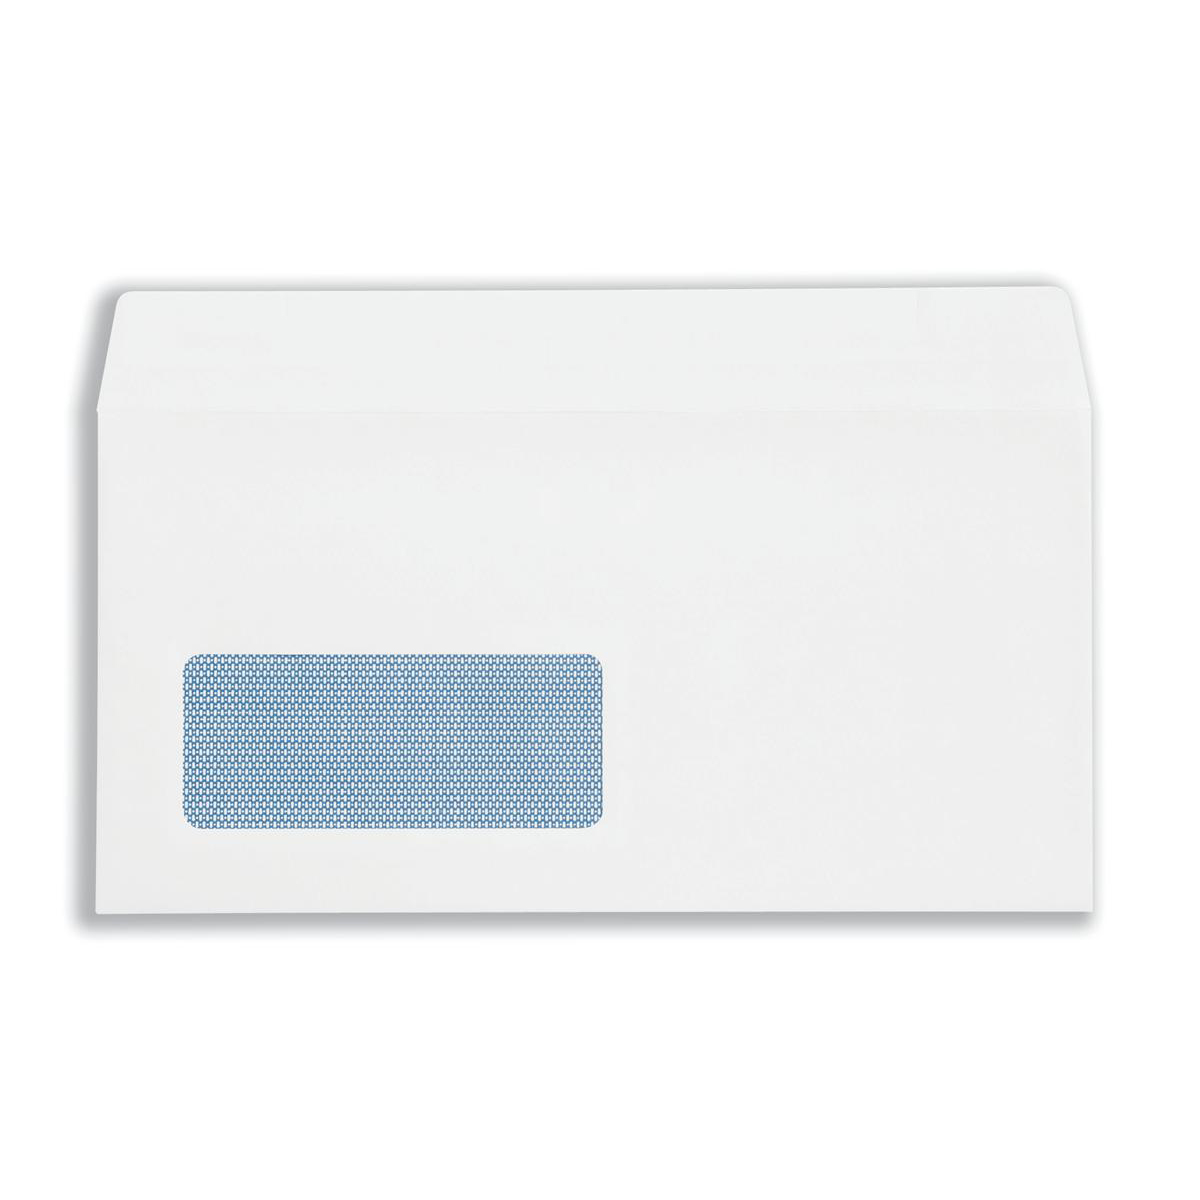 Plus Fabric Envelopes PEFC Wallet Self Seal Window 120gsm DL 220x110mm White Ref C23370 Pack 250